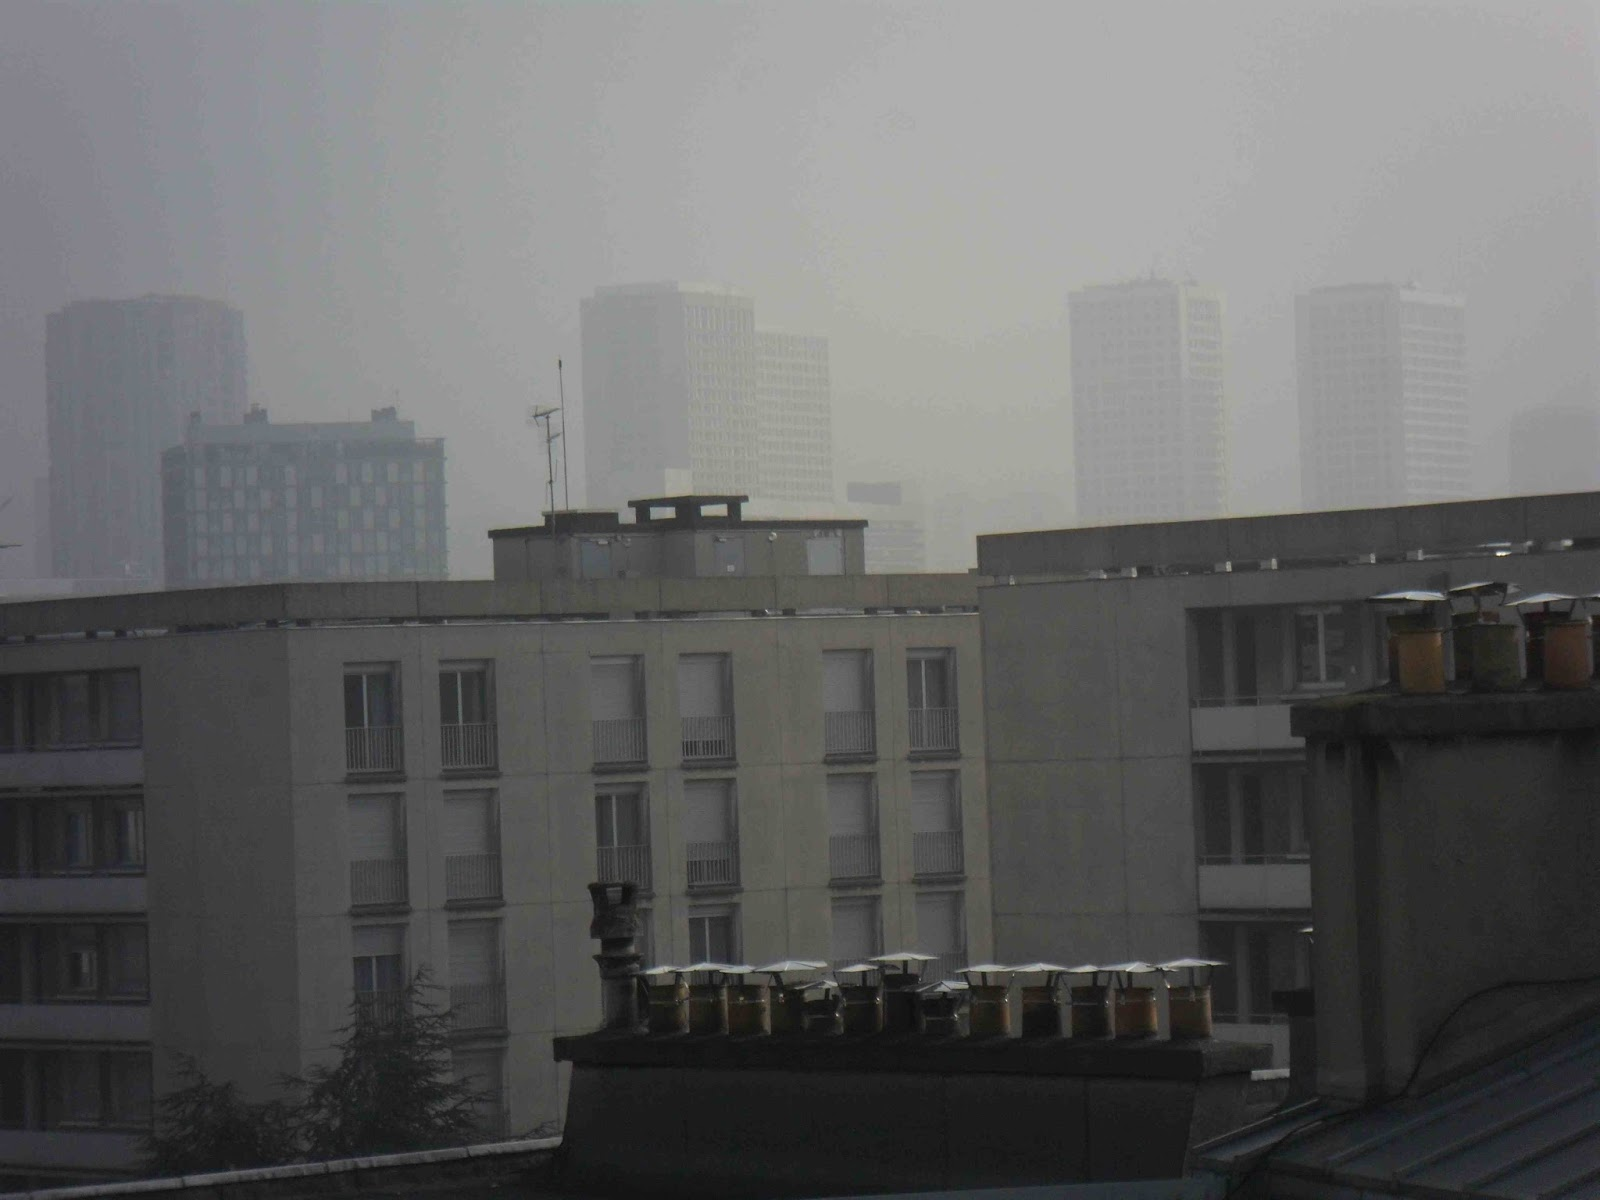 L 39 echo parisien la pollution parisienne vue de ma fen tre for Vue de ma fenetre